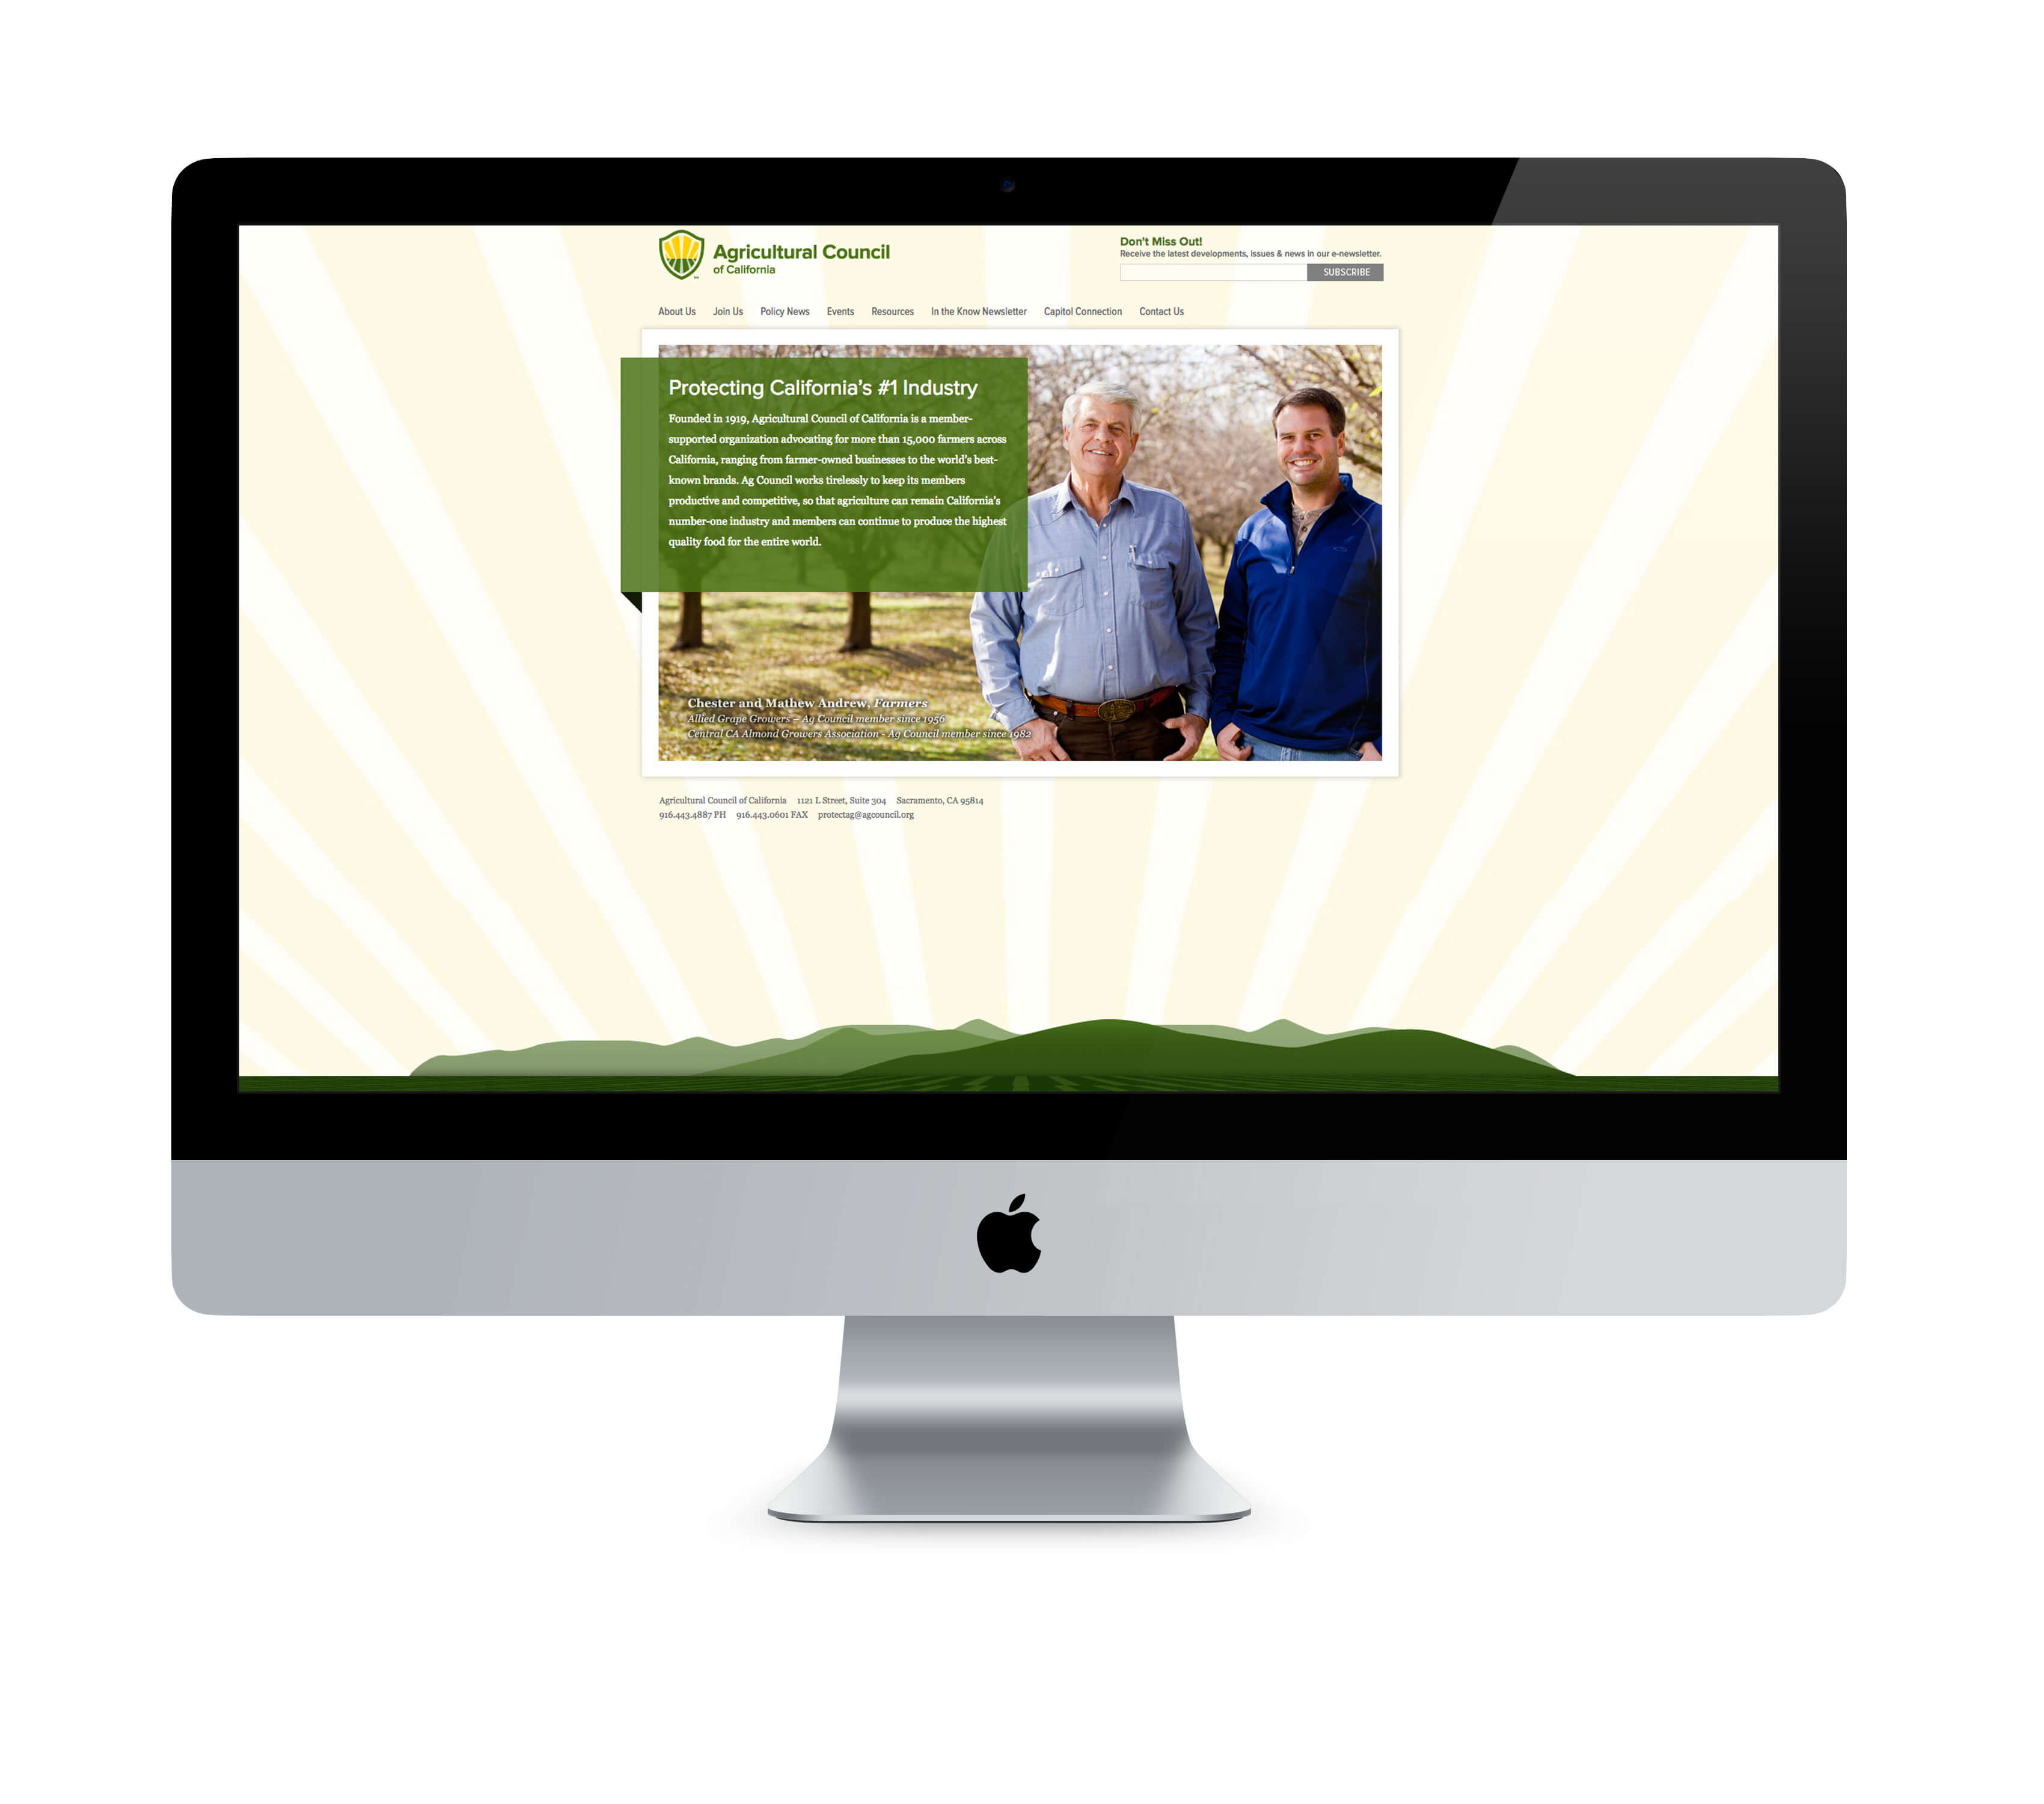 Agricultural Council of California website